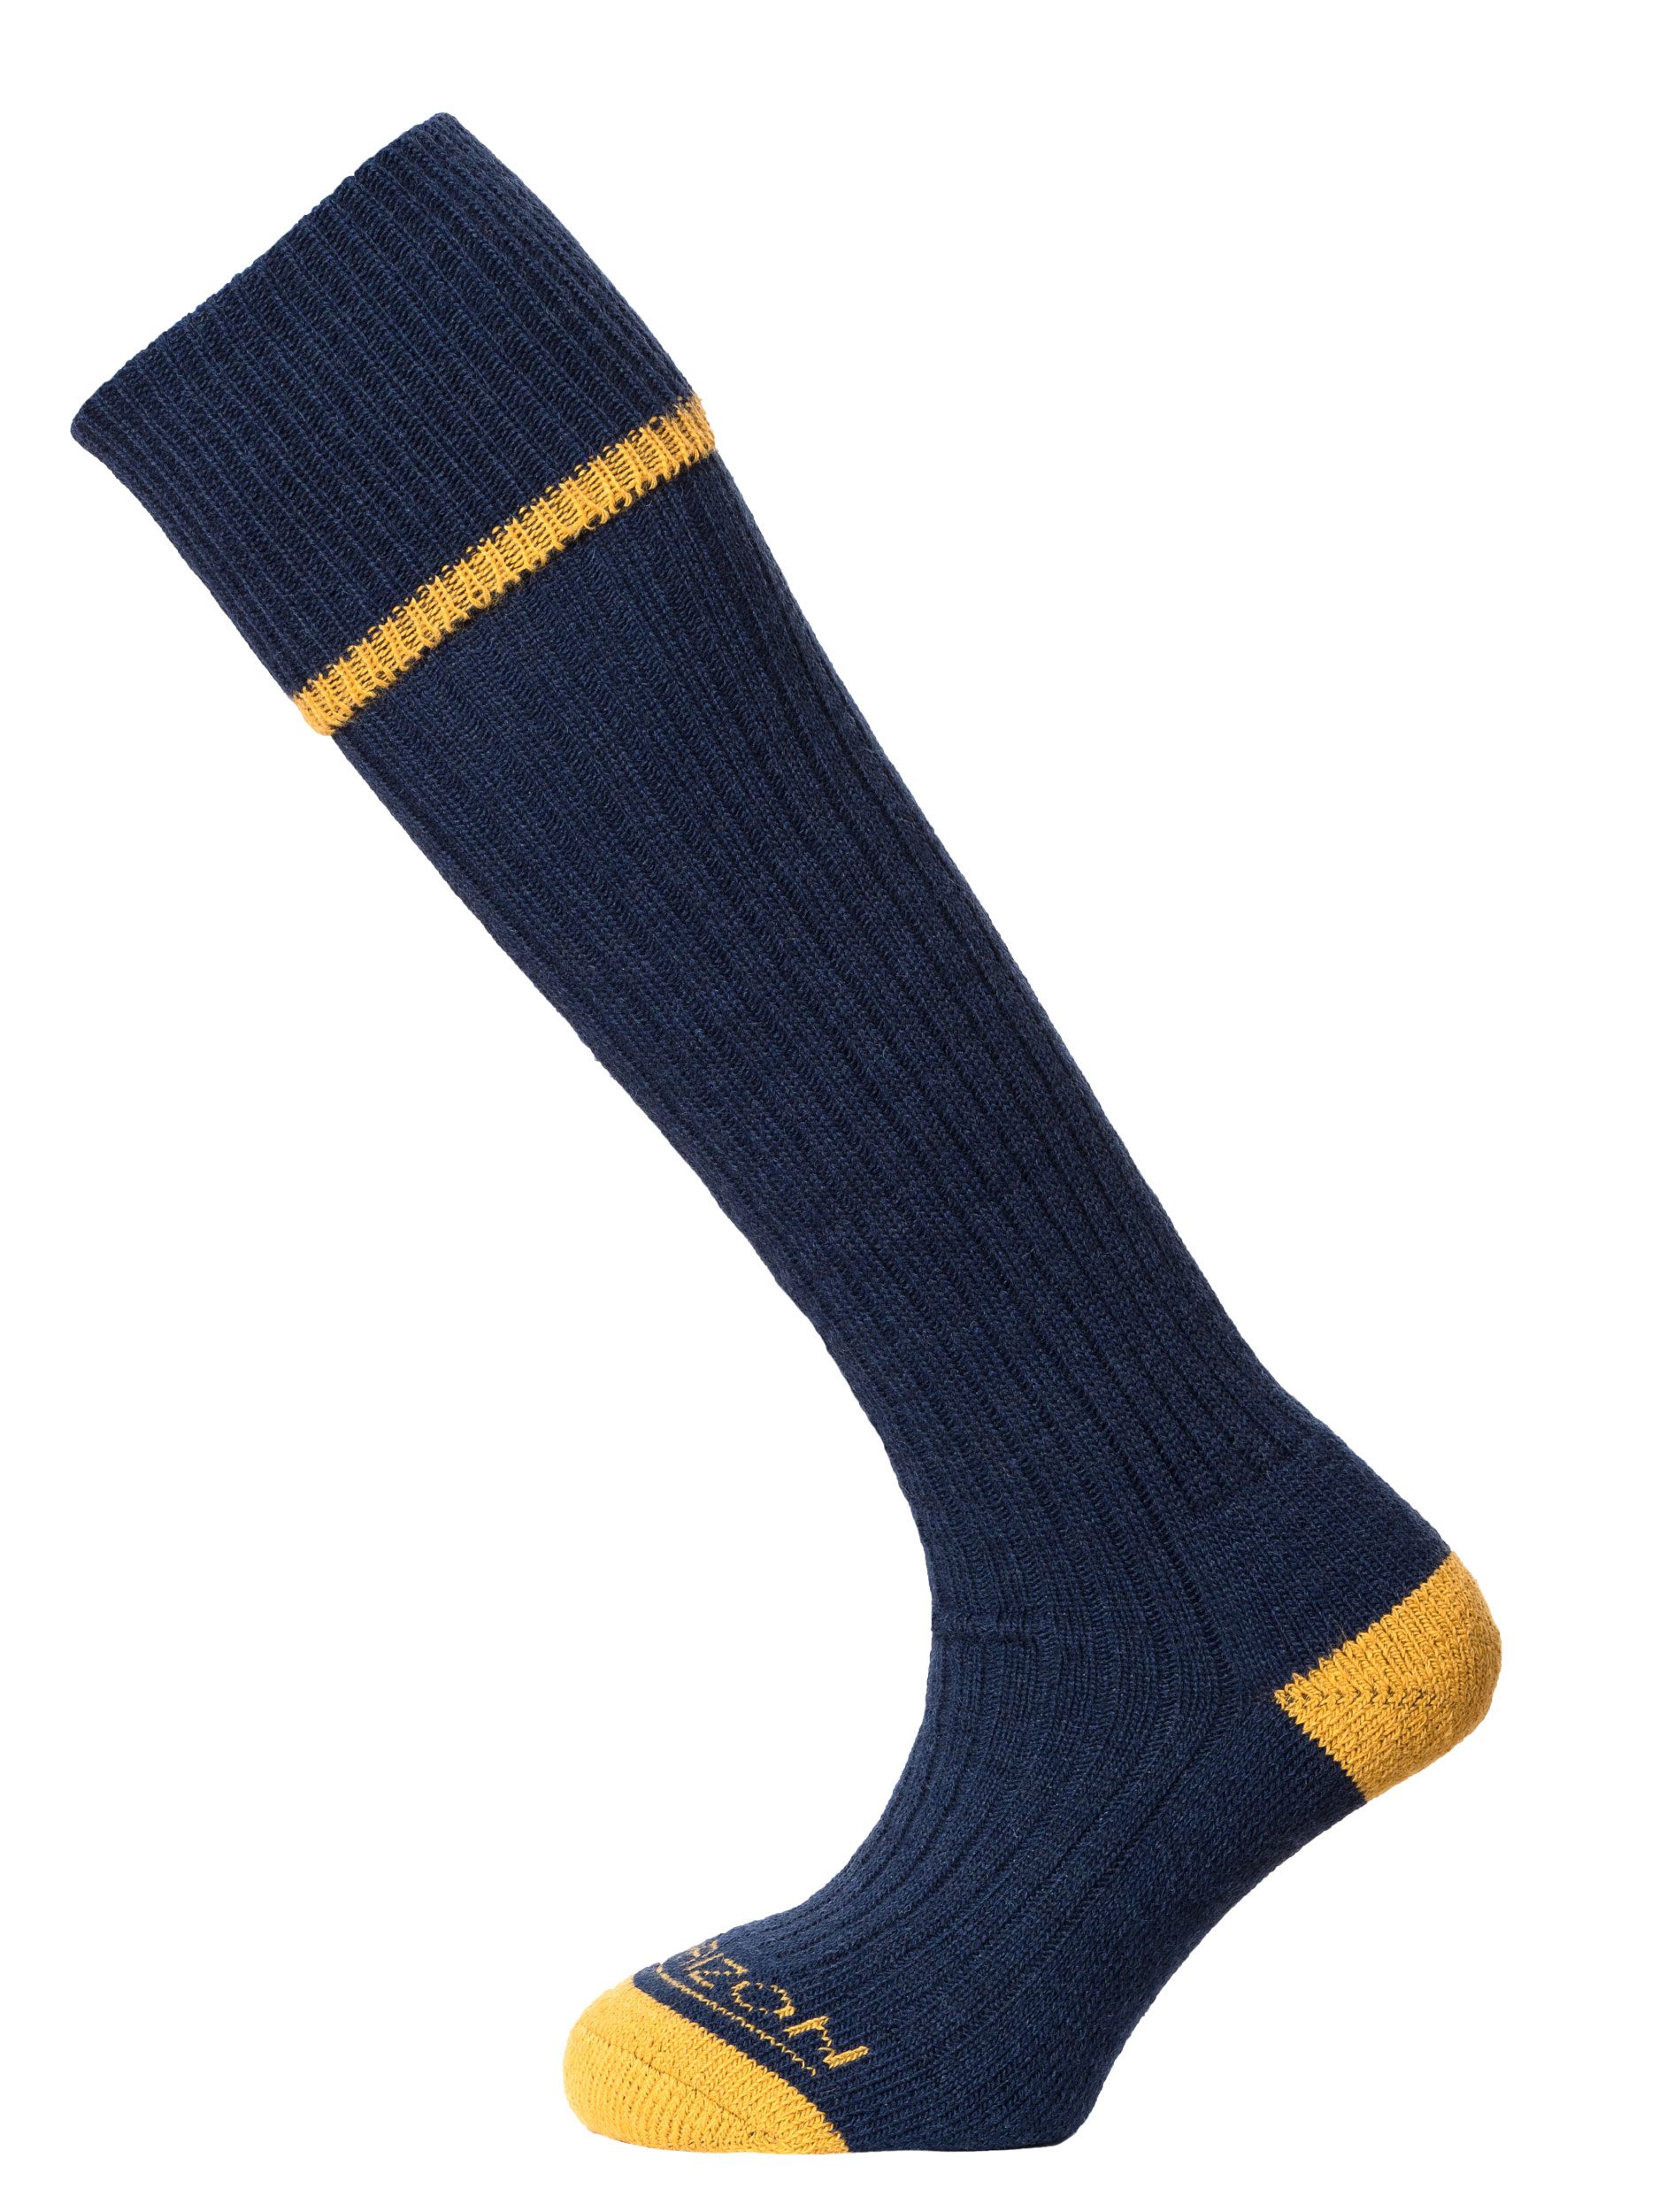 Horizon Field Sport Turn-over-Top Sock Navy Mustard